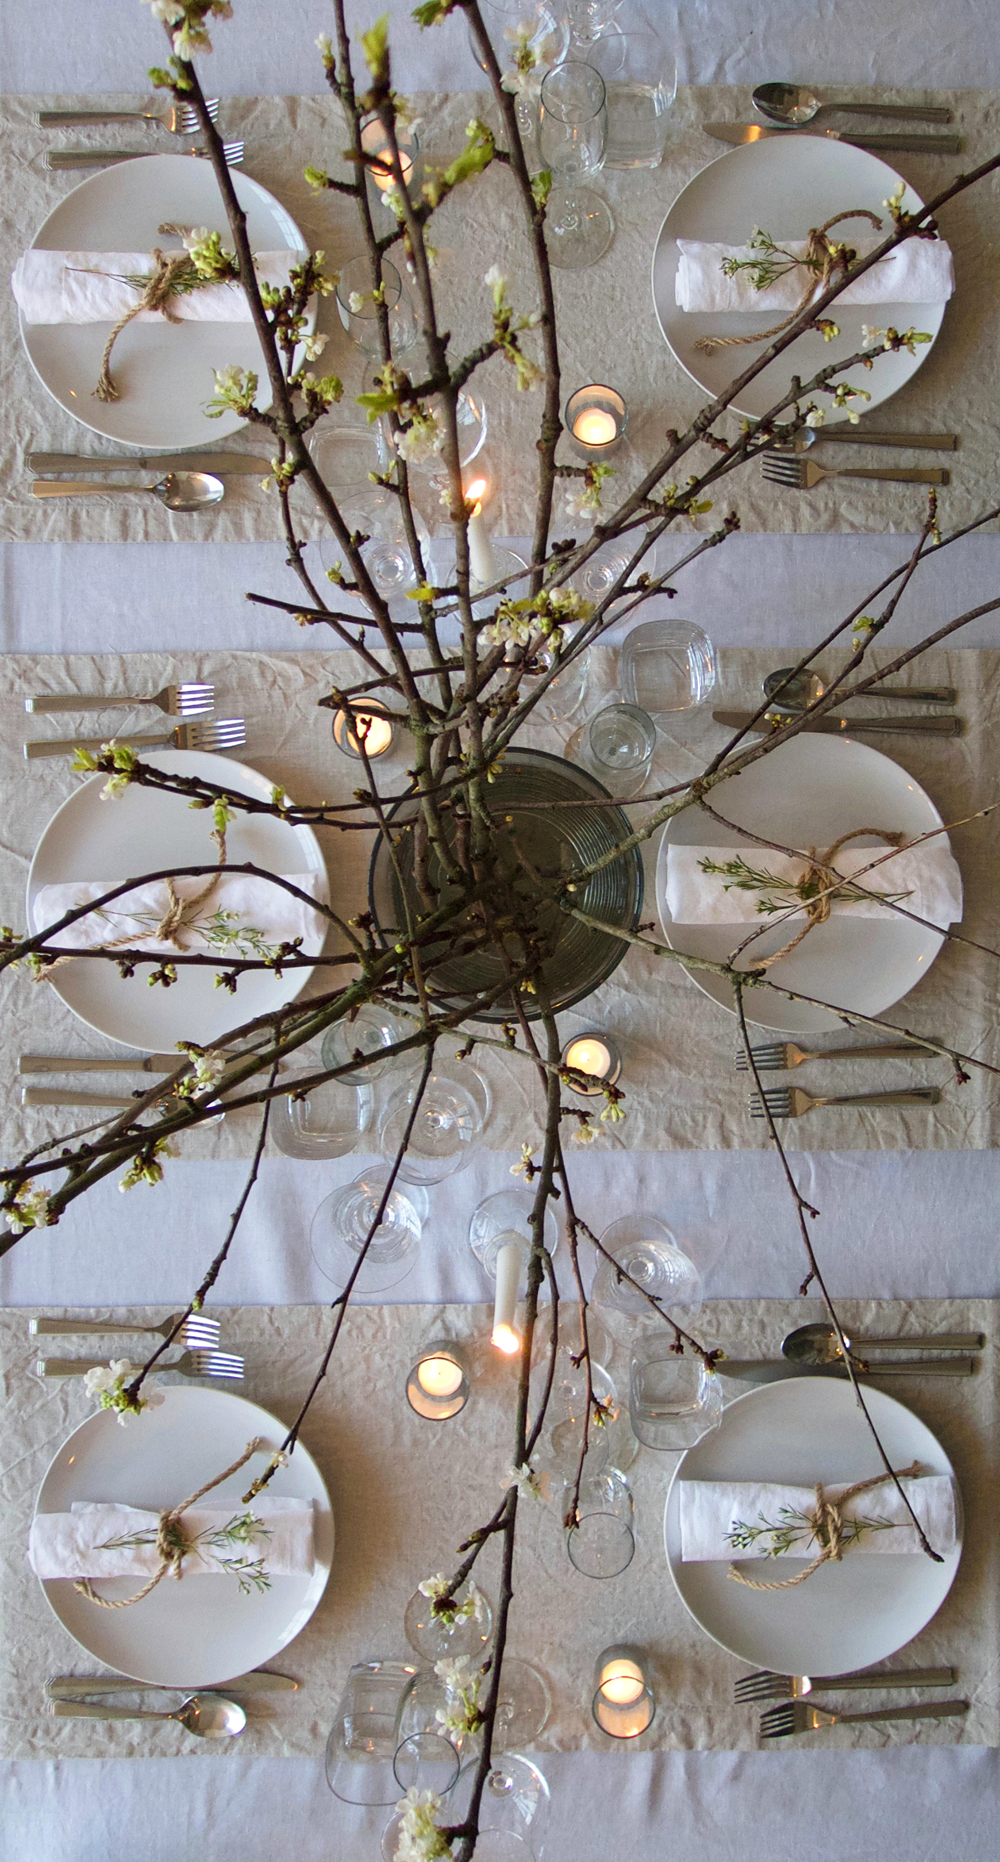 Scandinavian dinner party layering white and natural flax linen table linens, candles and blossom